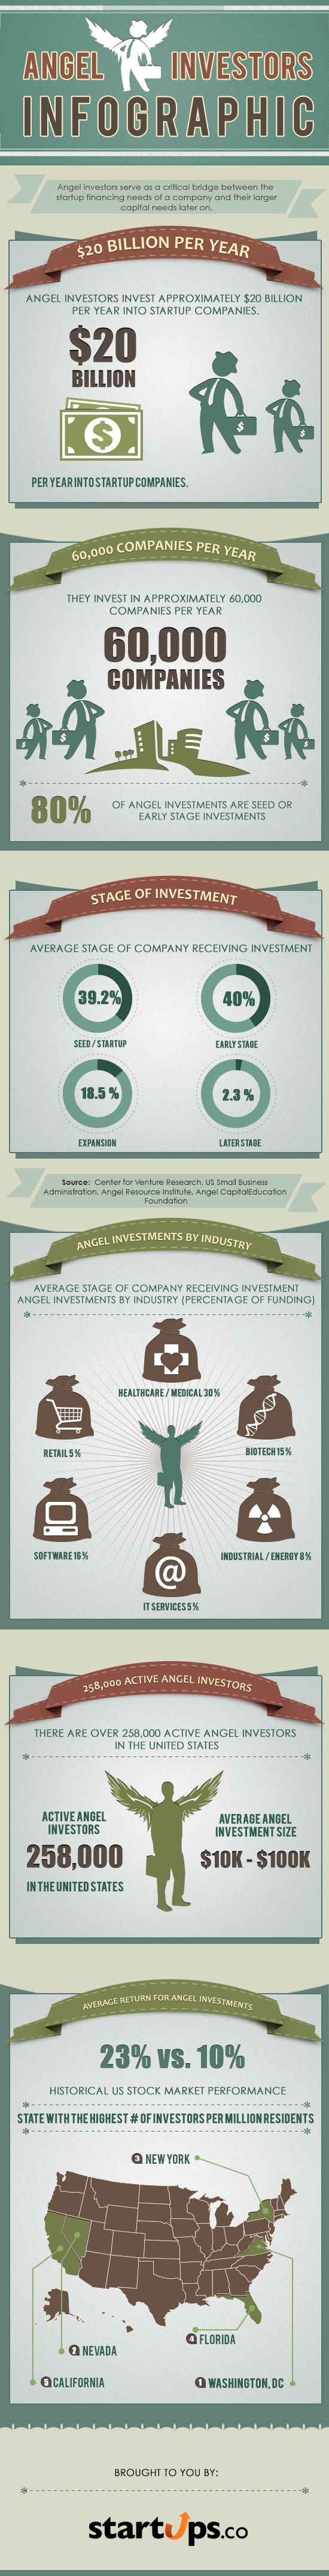 Infographic – The angel investing landscape and trends in the US